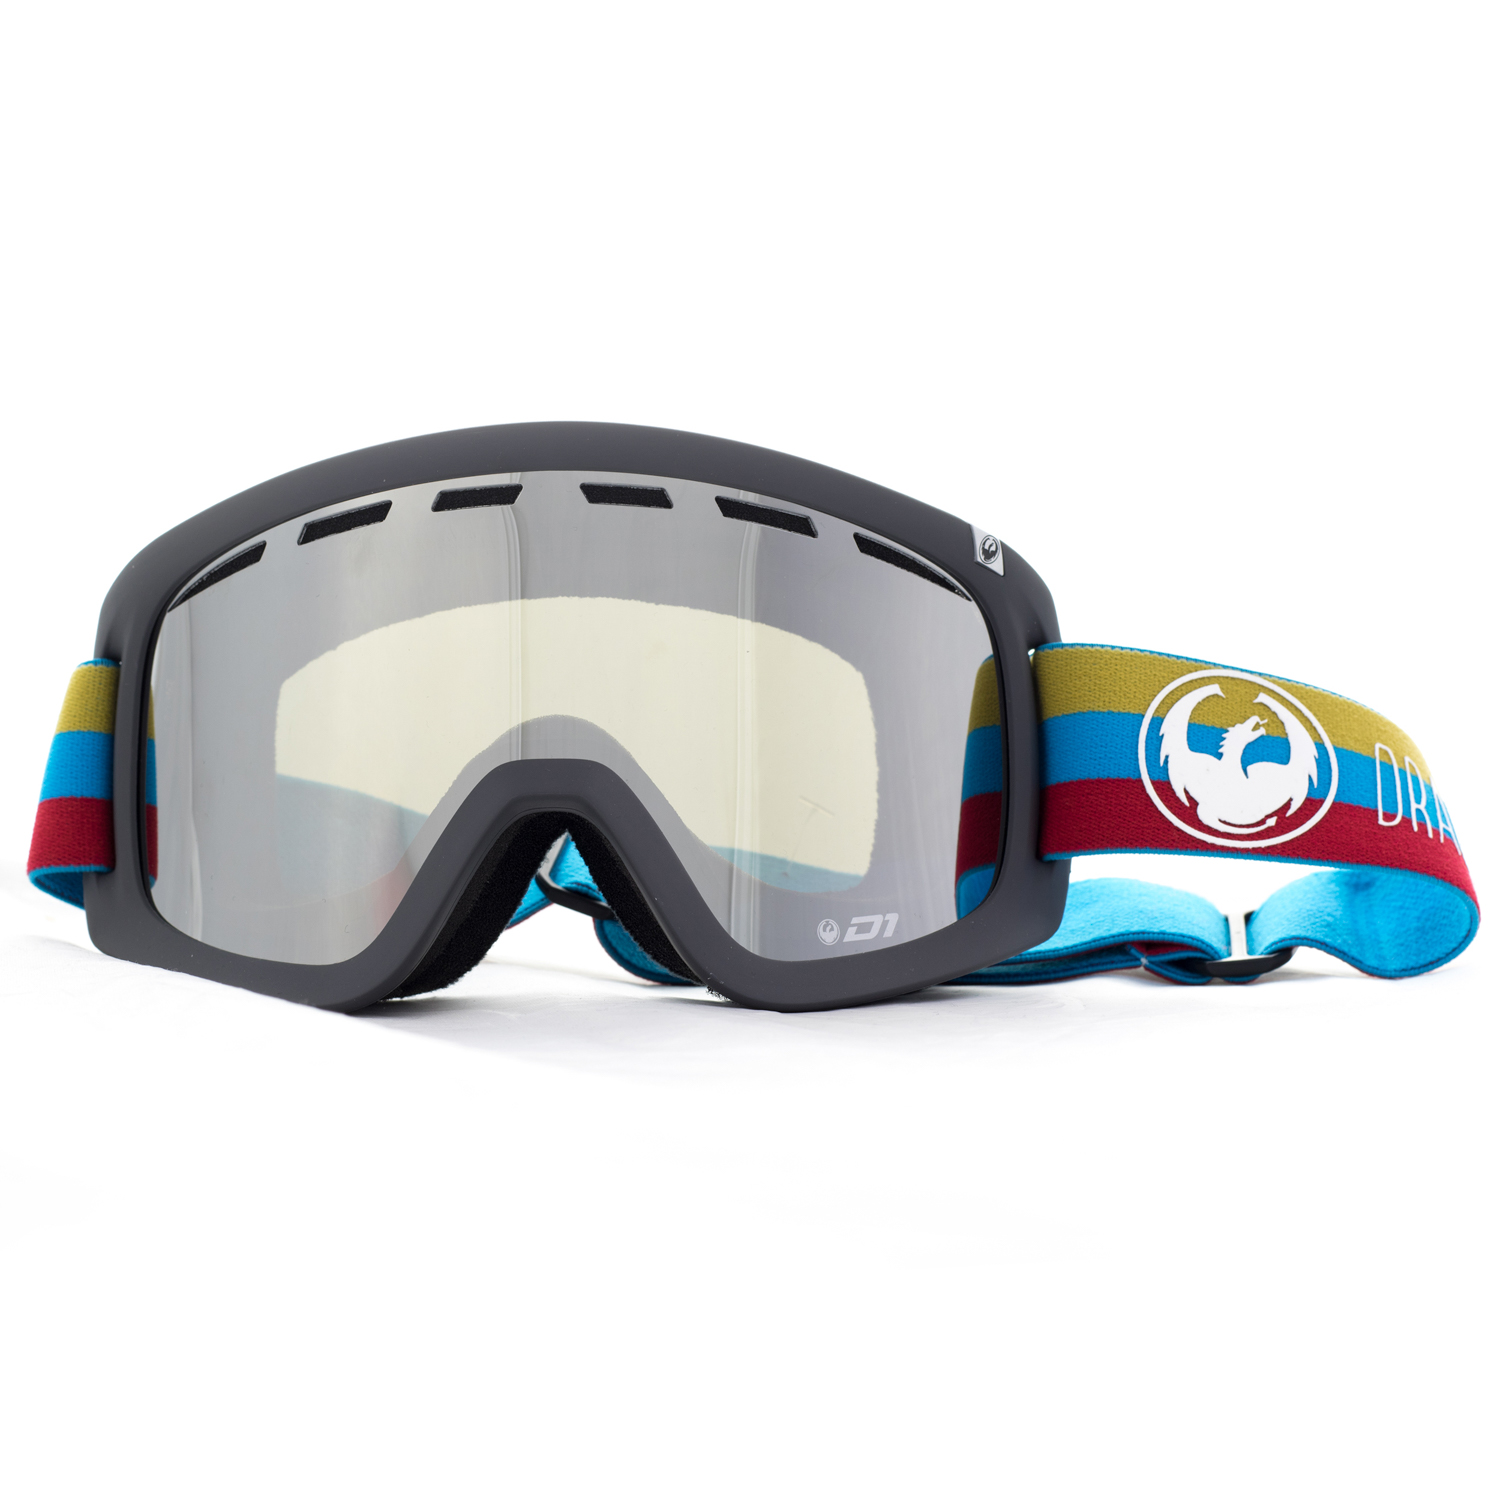 Dragon D1 Layer Mirror Ion Snowboard Goggles - ATBShop.co.uk